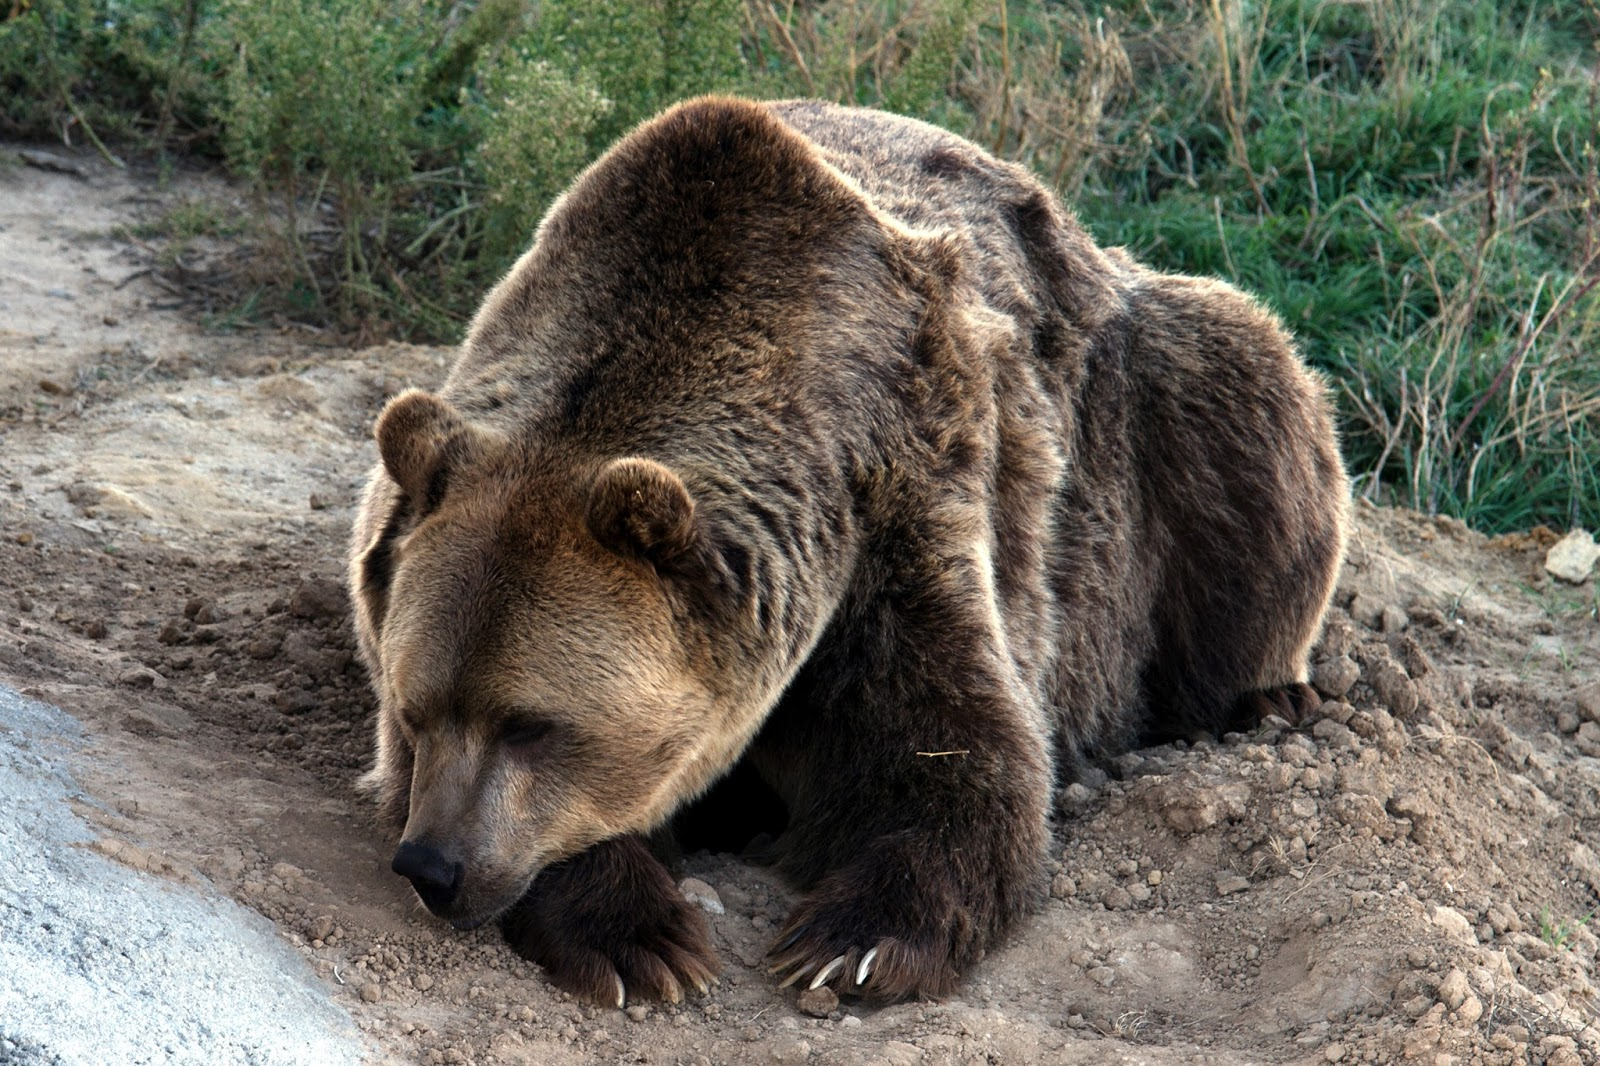 Grizzly bear picture.